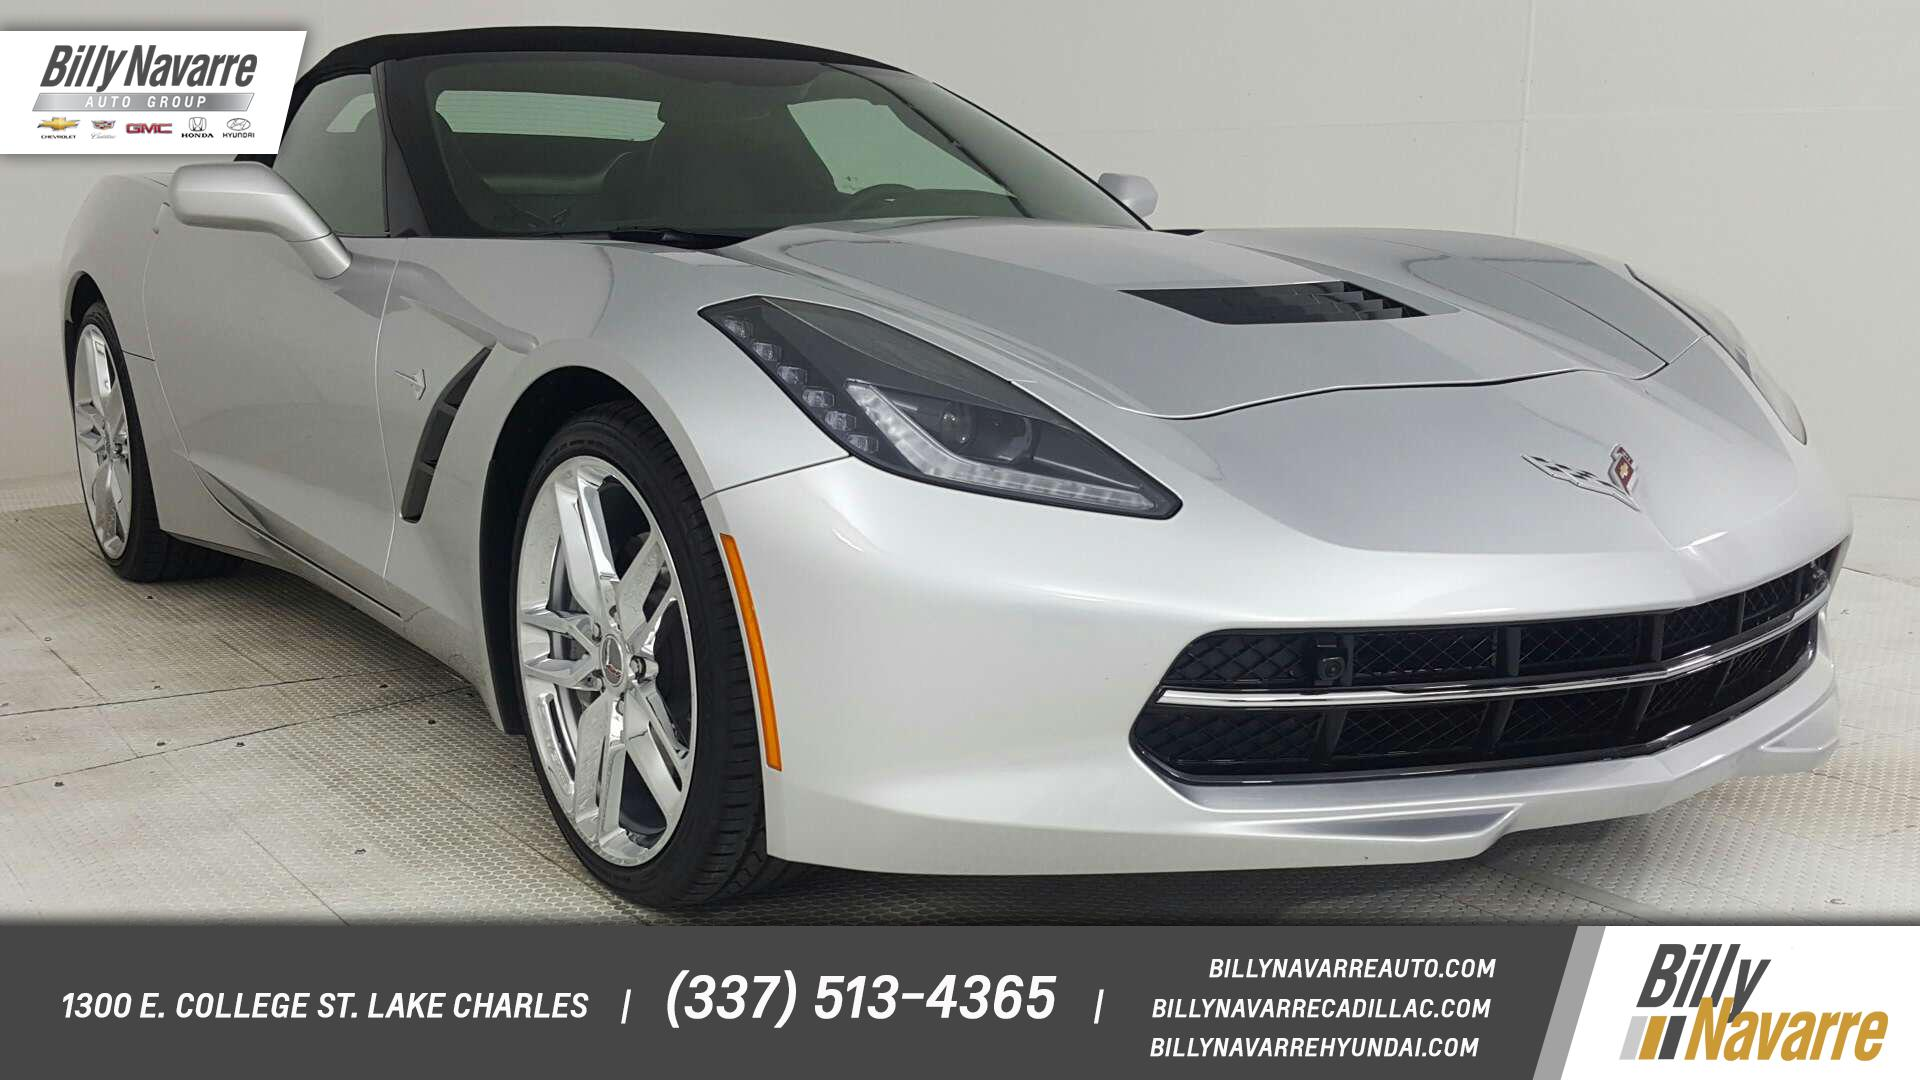 Cheap Cars For Sale In Lake Charles La >> Lake Charles Used Chevrolet Corvette Vehicles For Sale